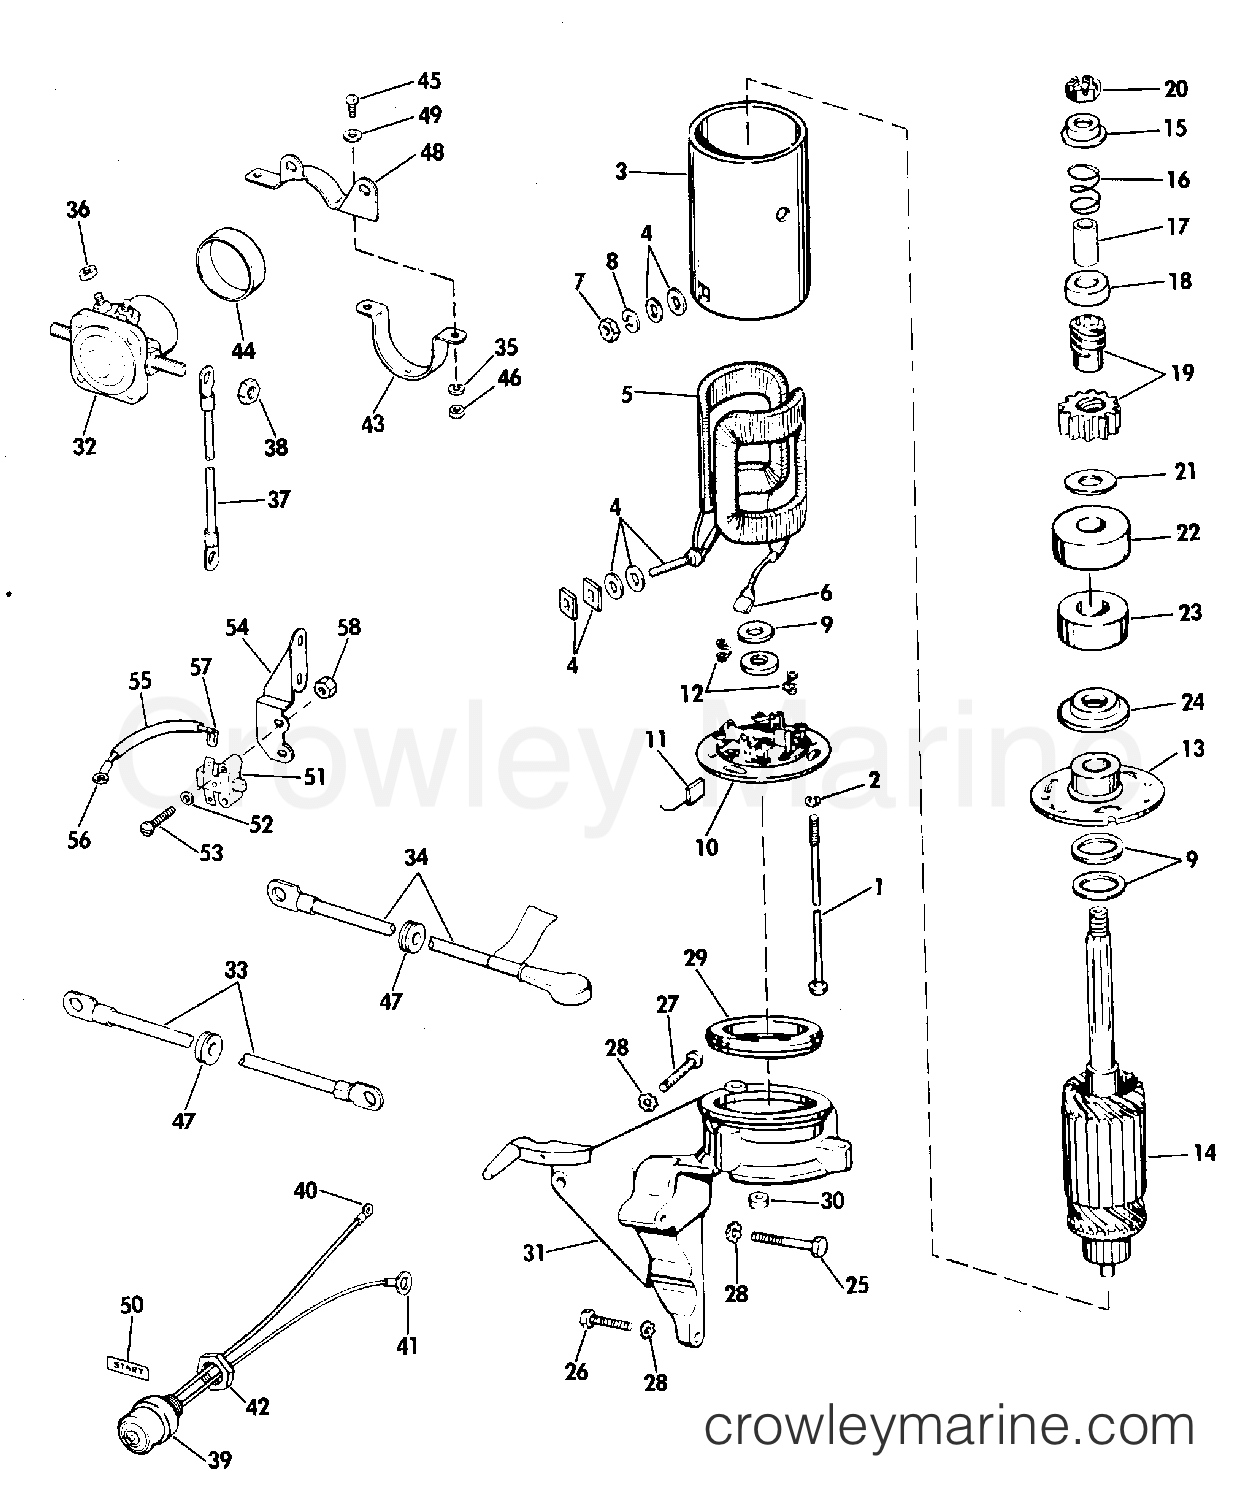 1995 johnson 40 hp outboard wiring diagram